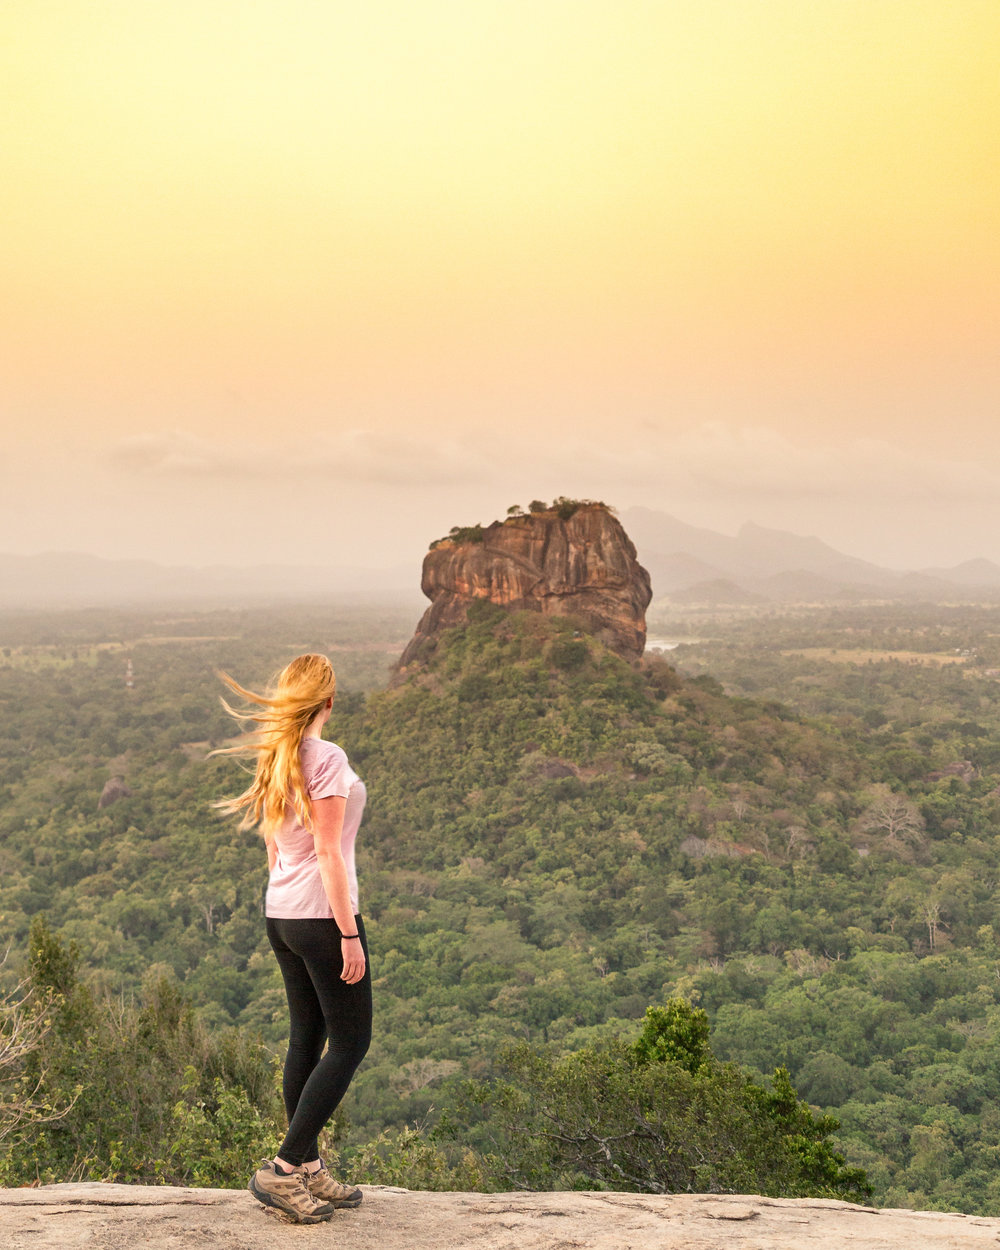 Best places to visit in Sri Lanka - Pidurangala Rock